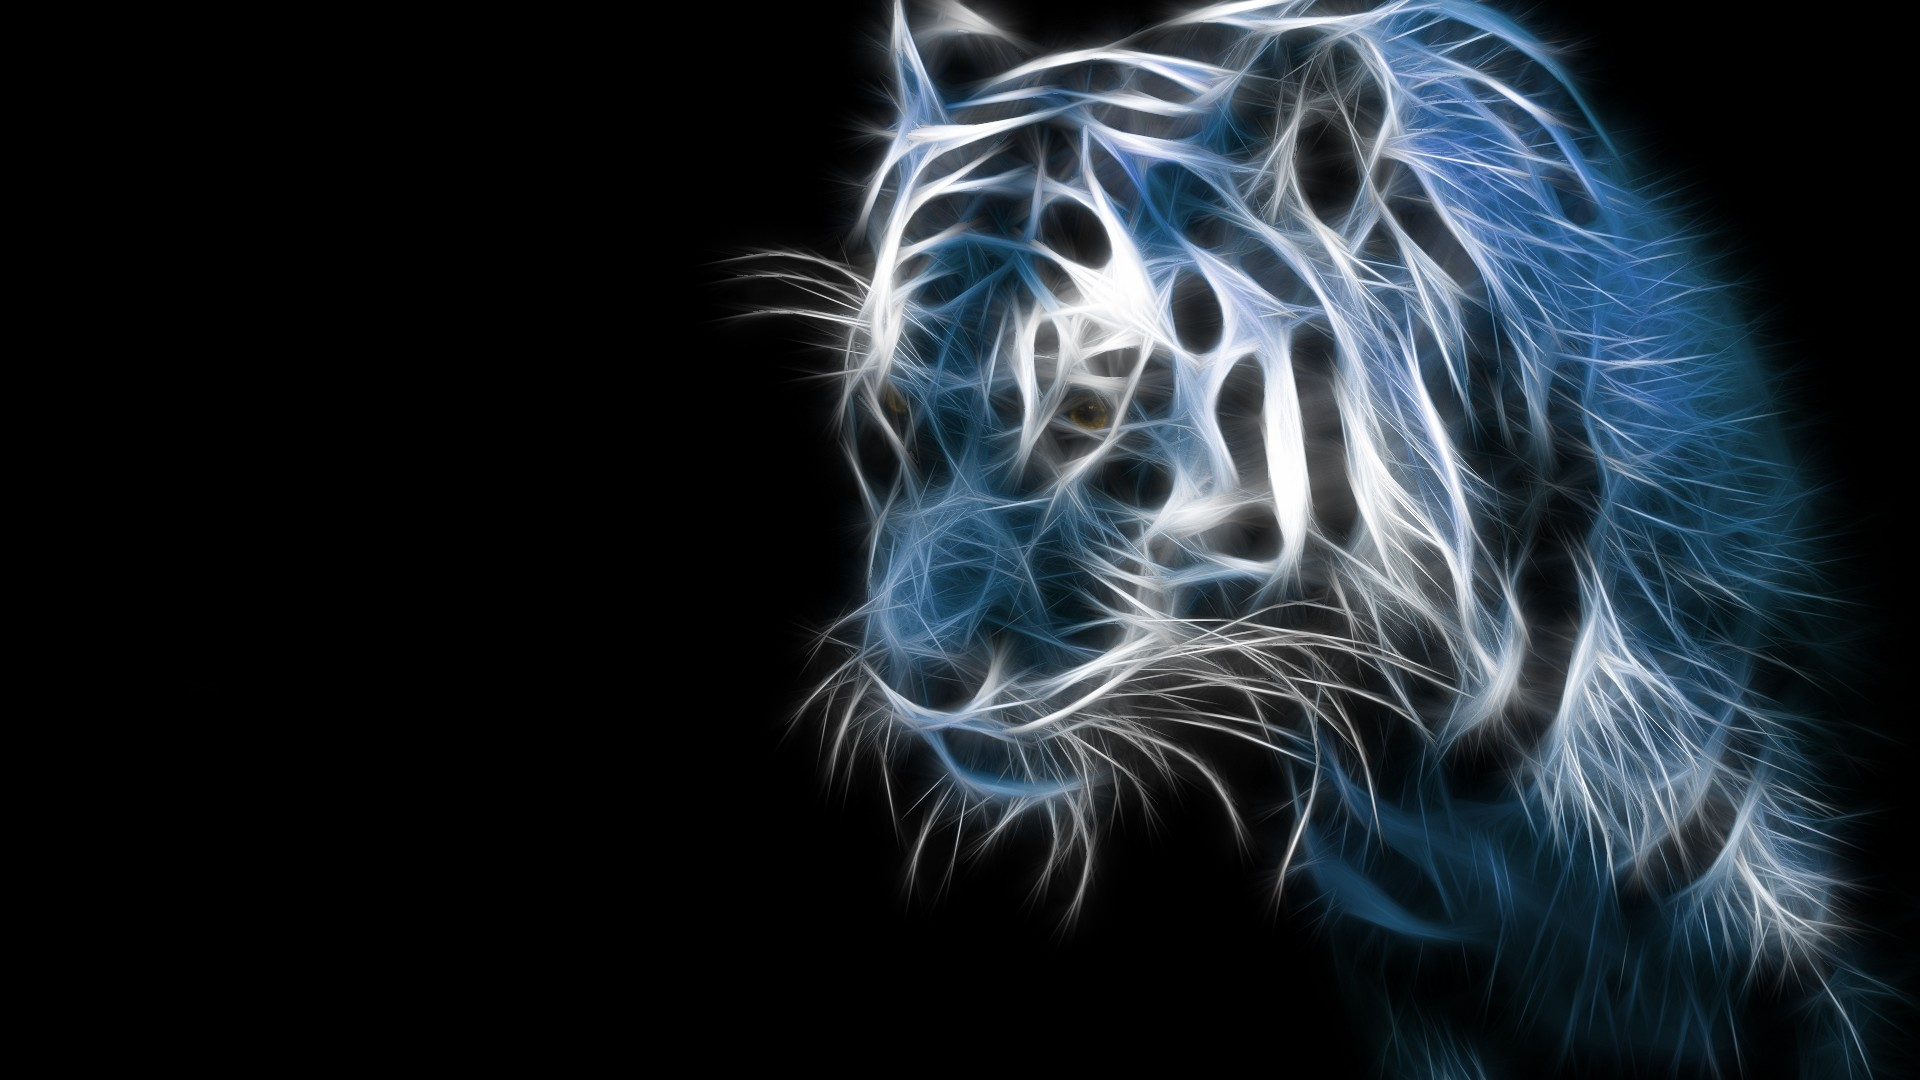 animated tiger wallpaper (56+ images)